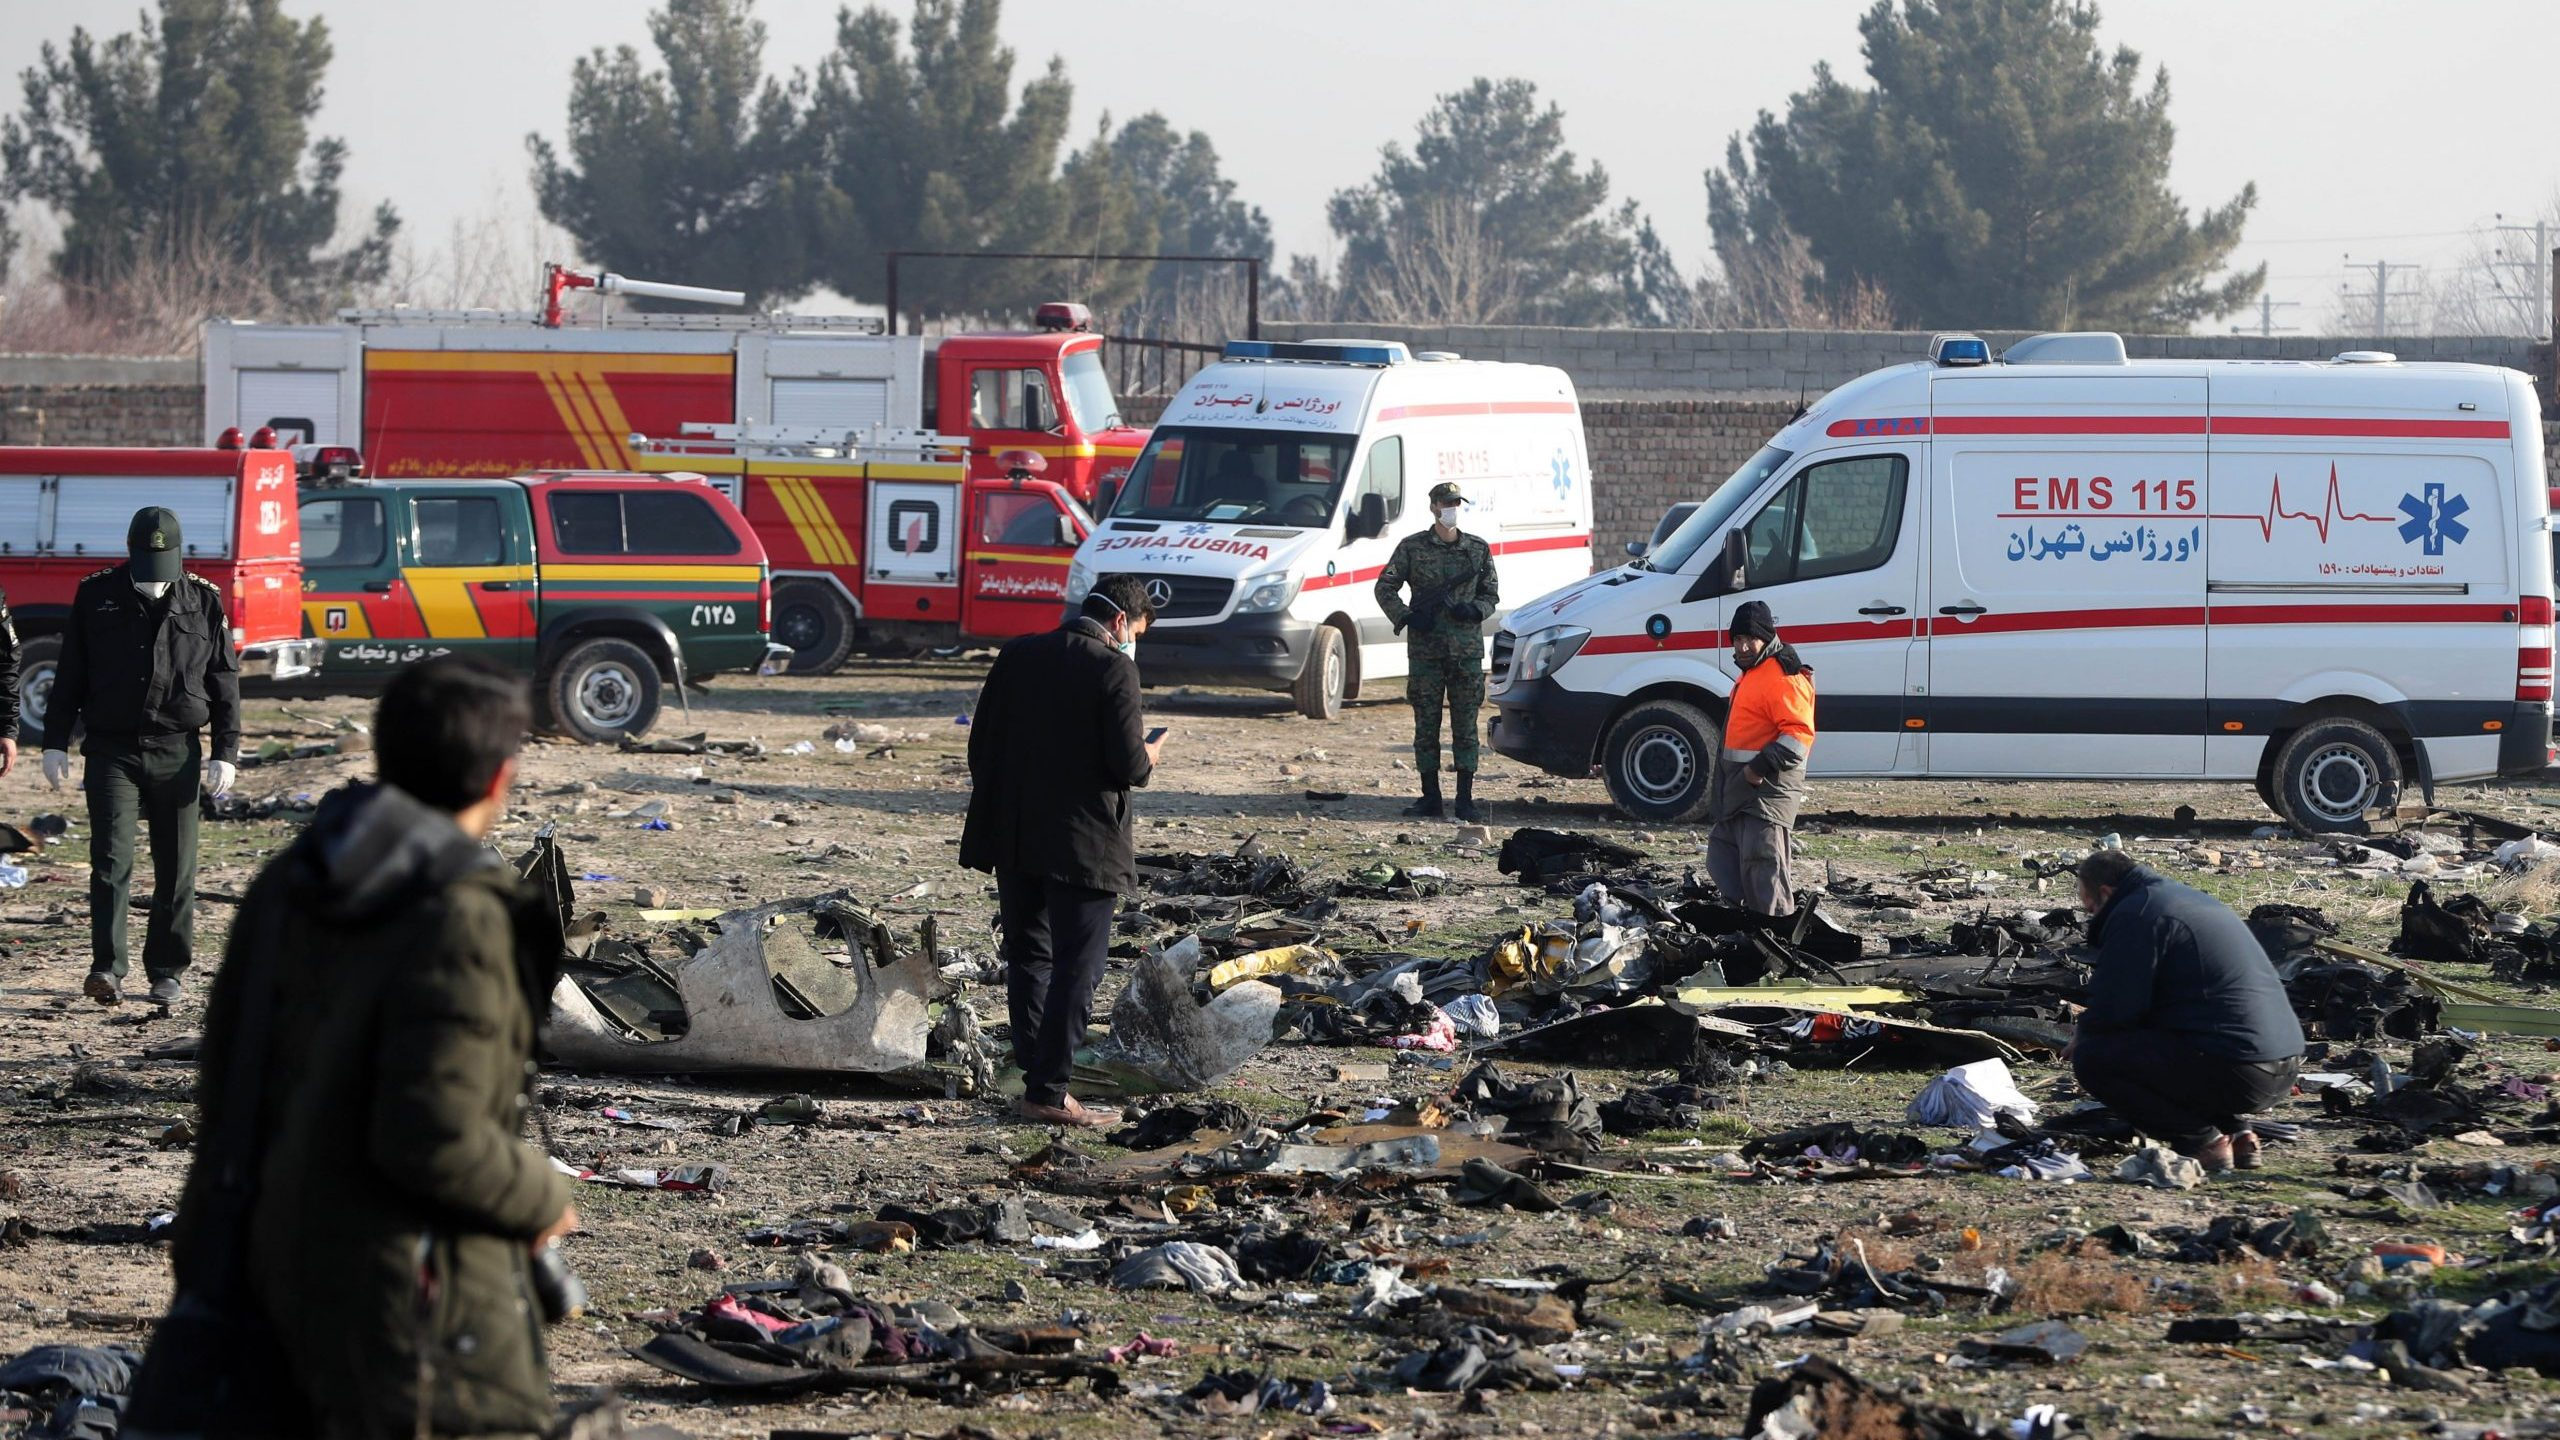 Rescue teams assess the wreckage after a Ukrainian plane carrying 176 passengers crashed near Imam Khomeini Airport in the Iranian capital Tehran early in the morning on Jan. 8, 2020. (Credit: AFP via Getty Images)